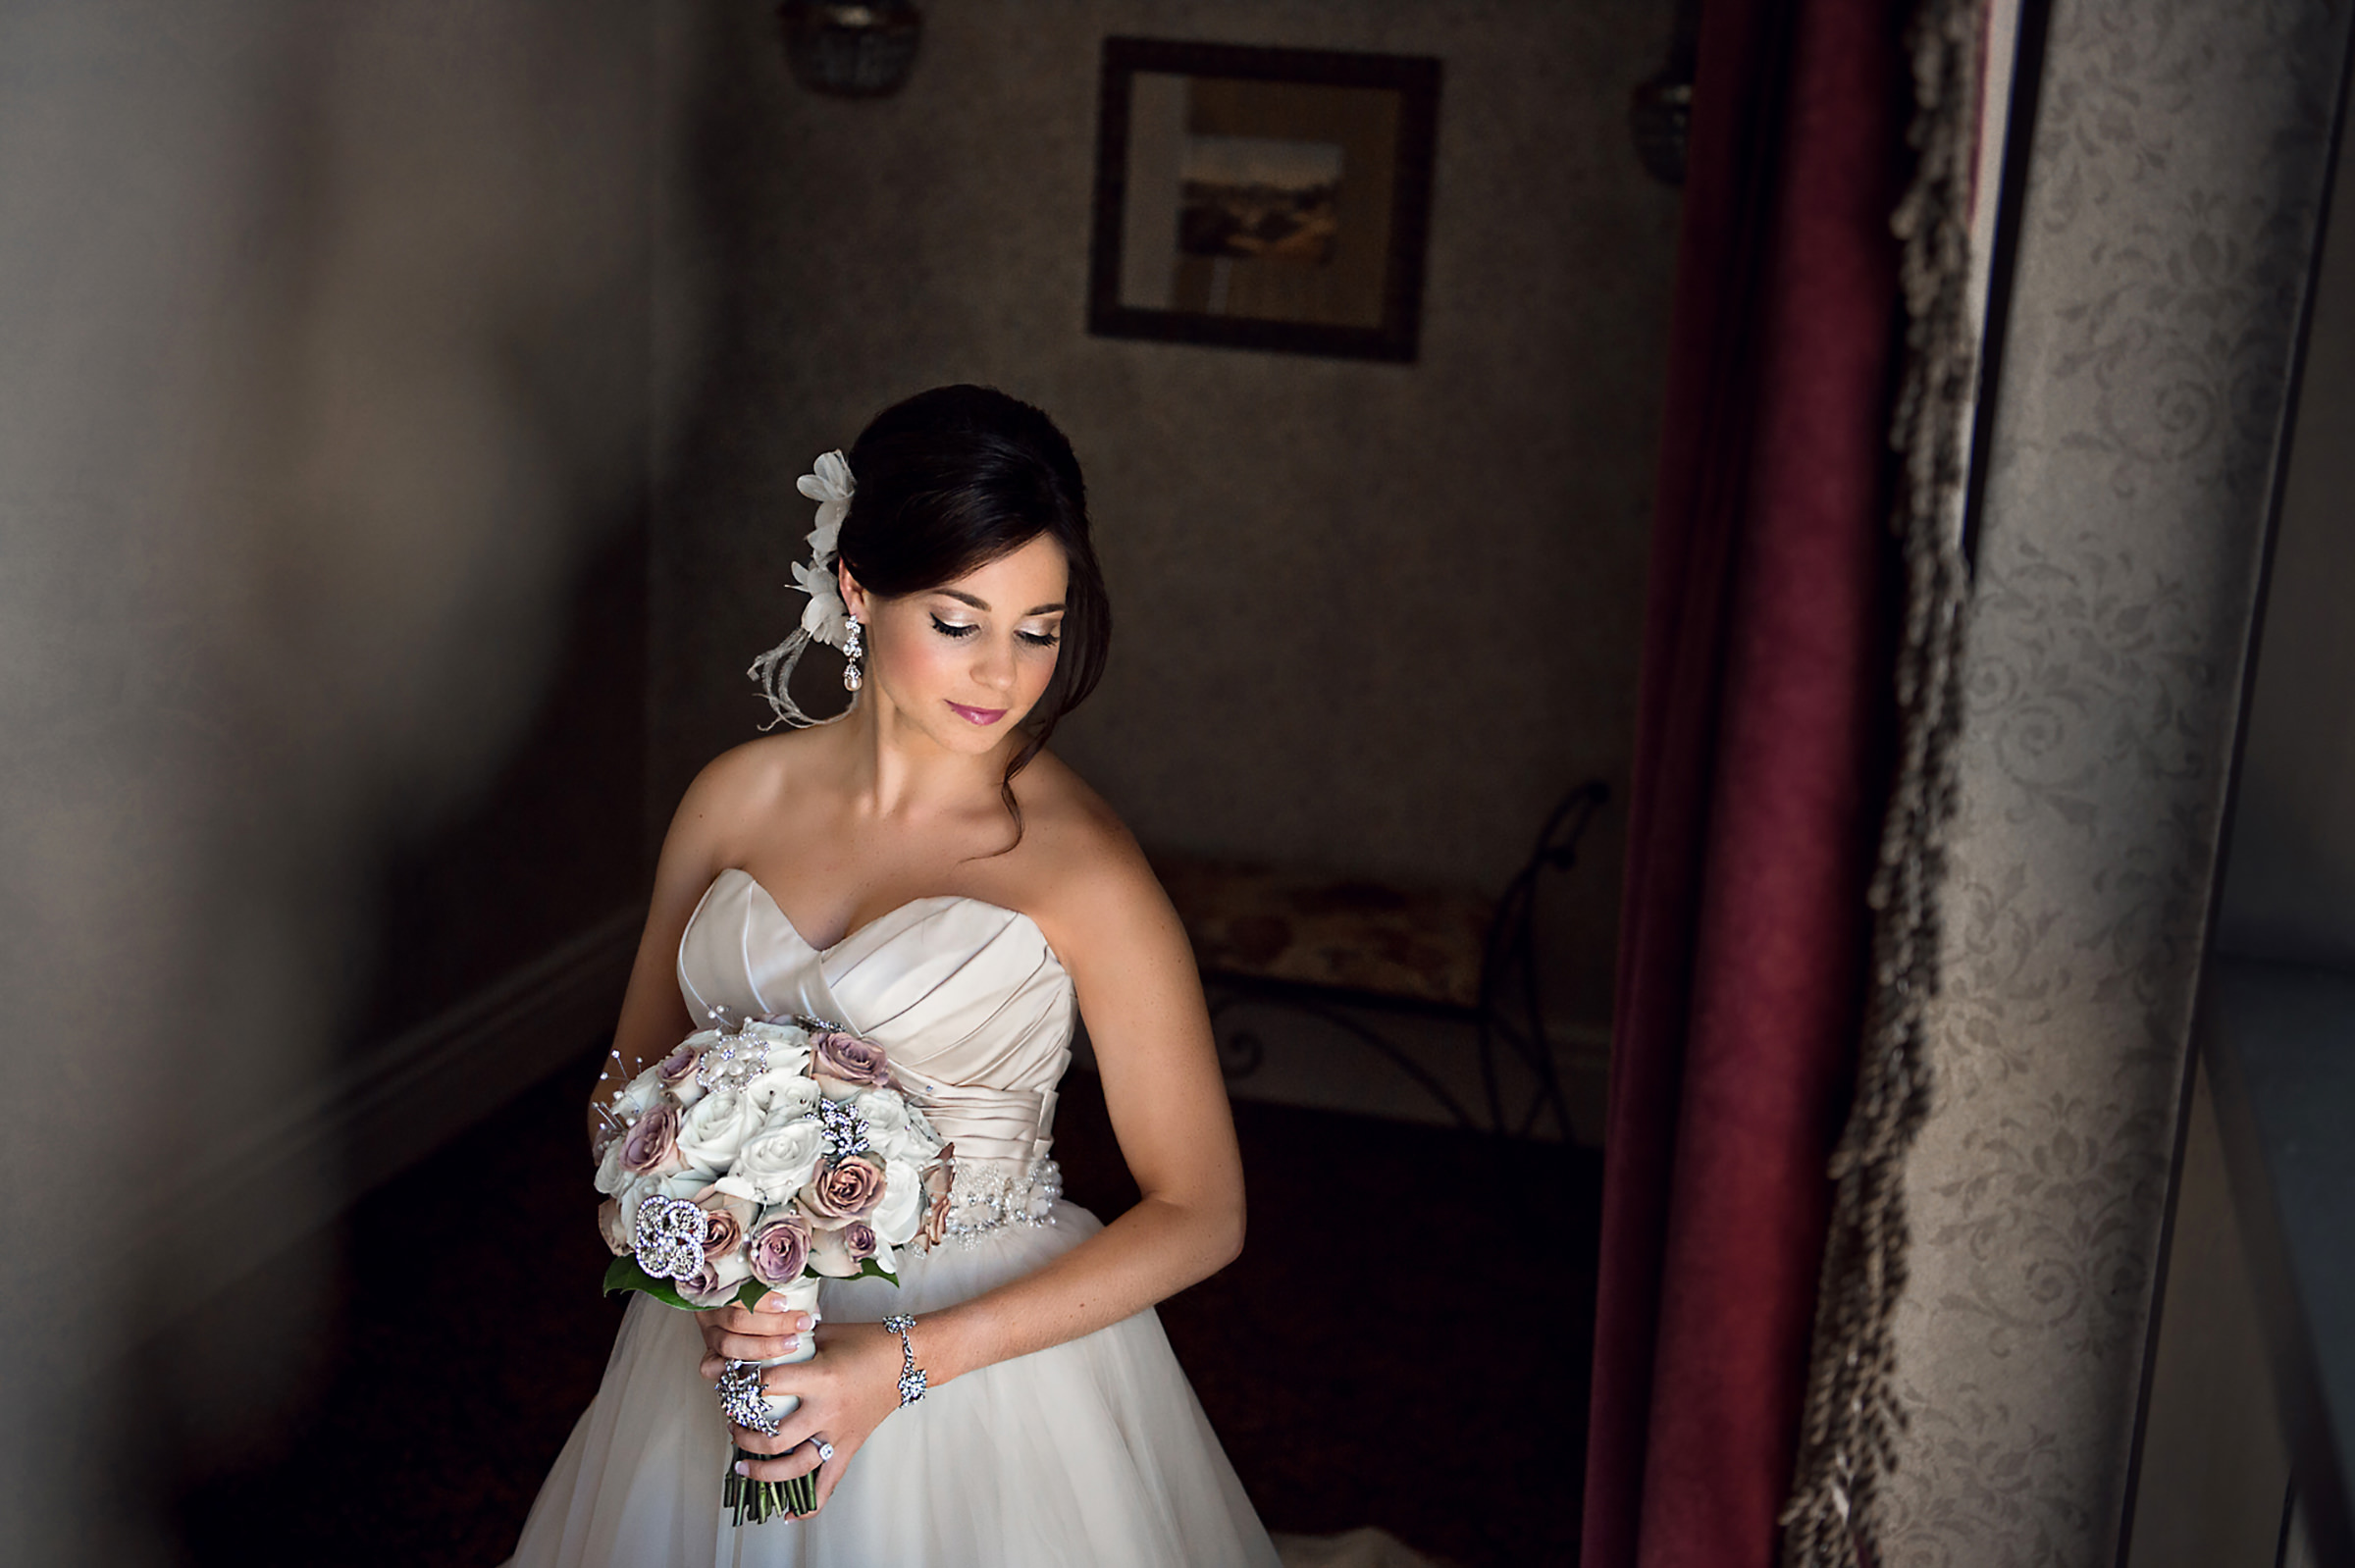 Lovely bride with bouquet - photo by David & Sherry Photography